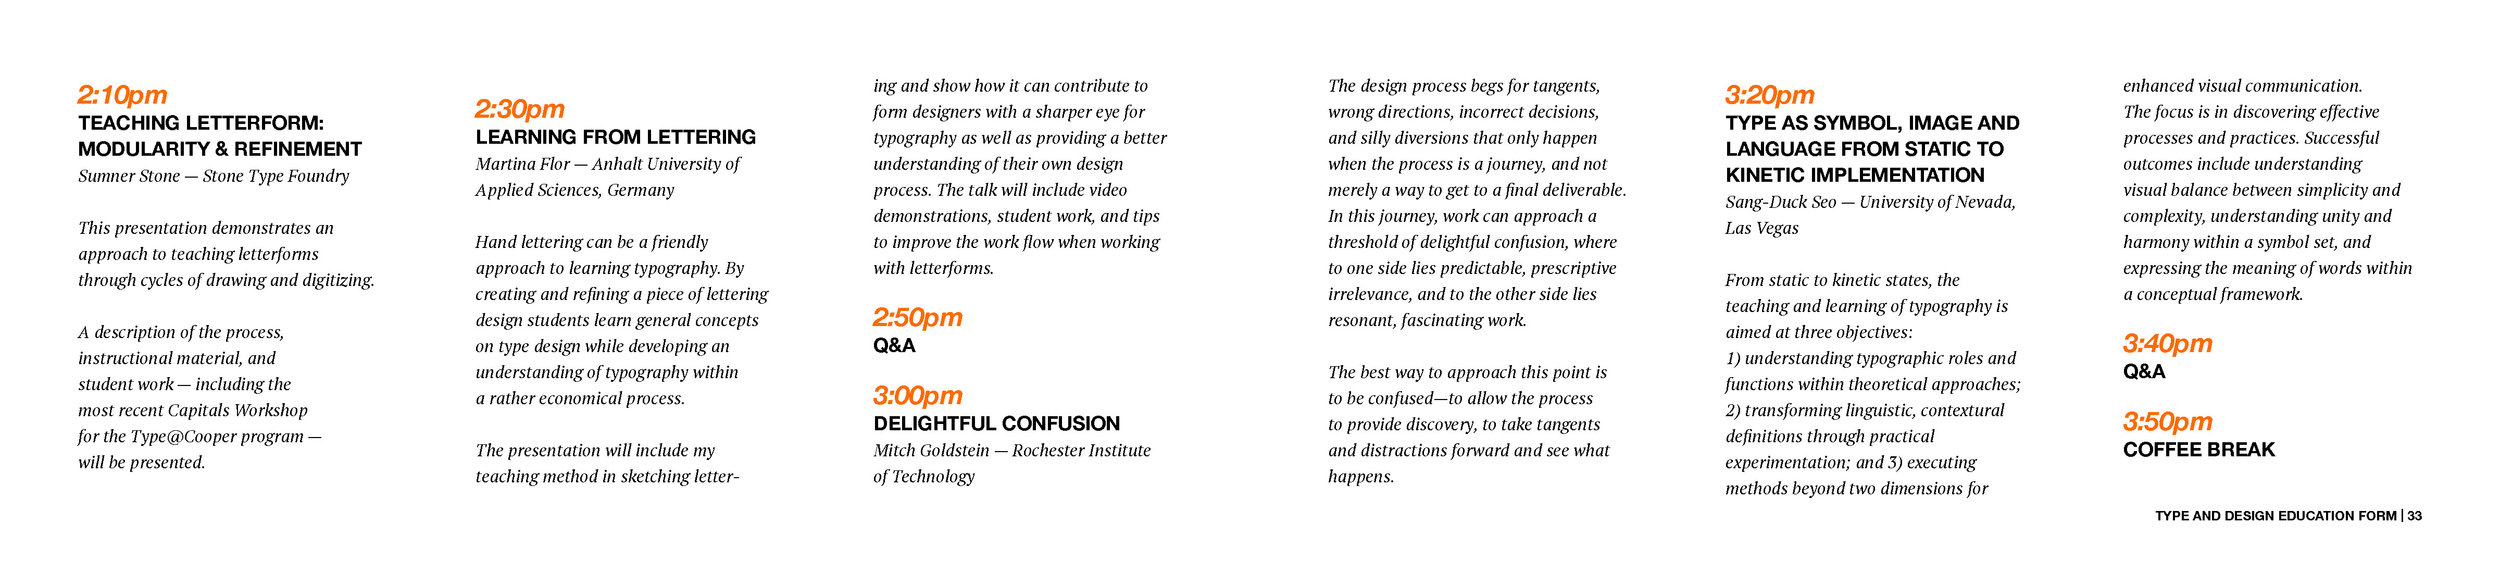 typecon_book_NEW_Page_17.jpg